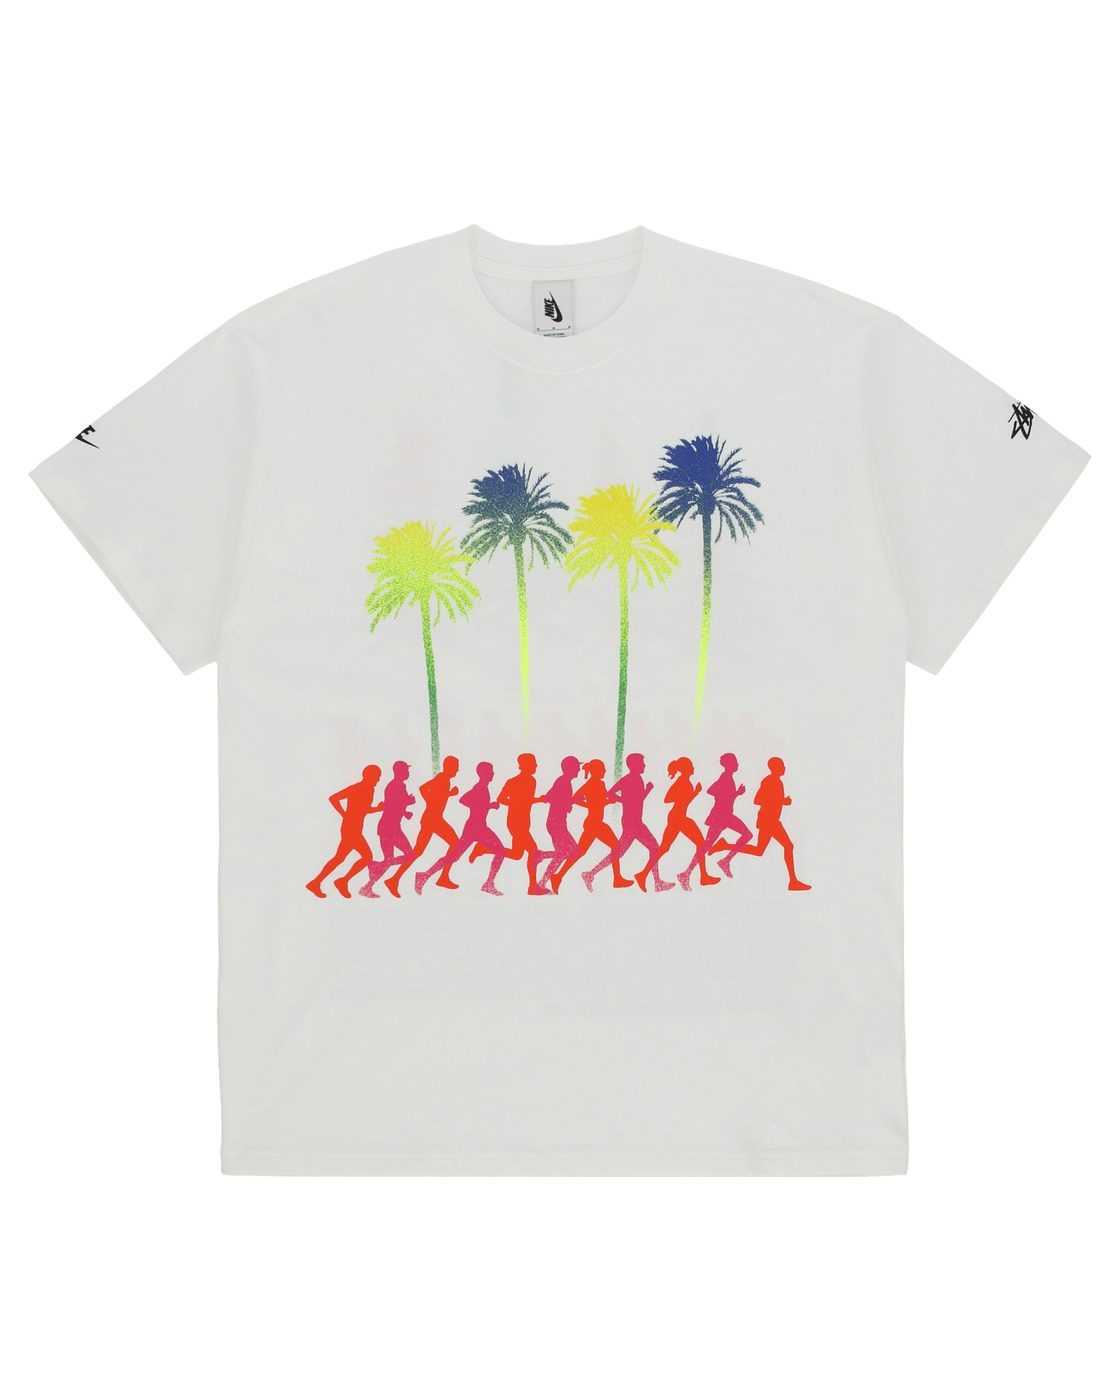 Nike Special Project Stussy T Shirt White